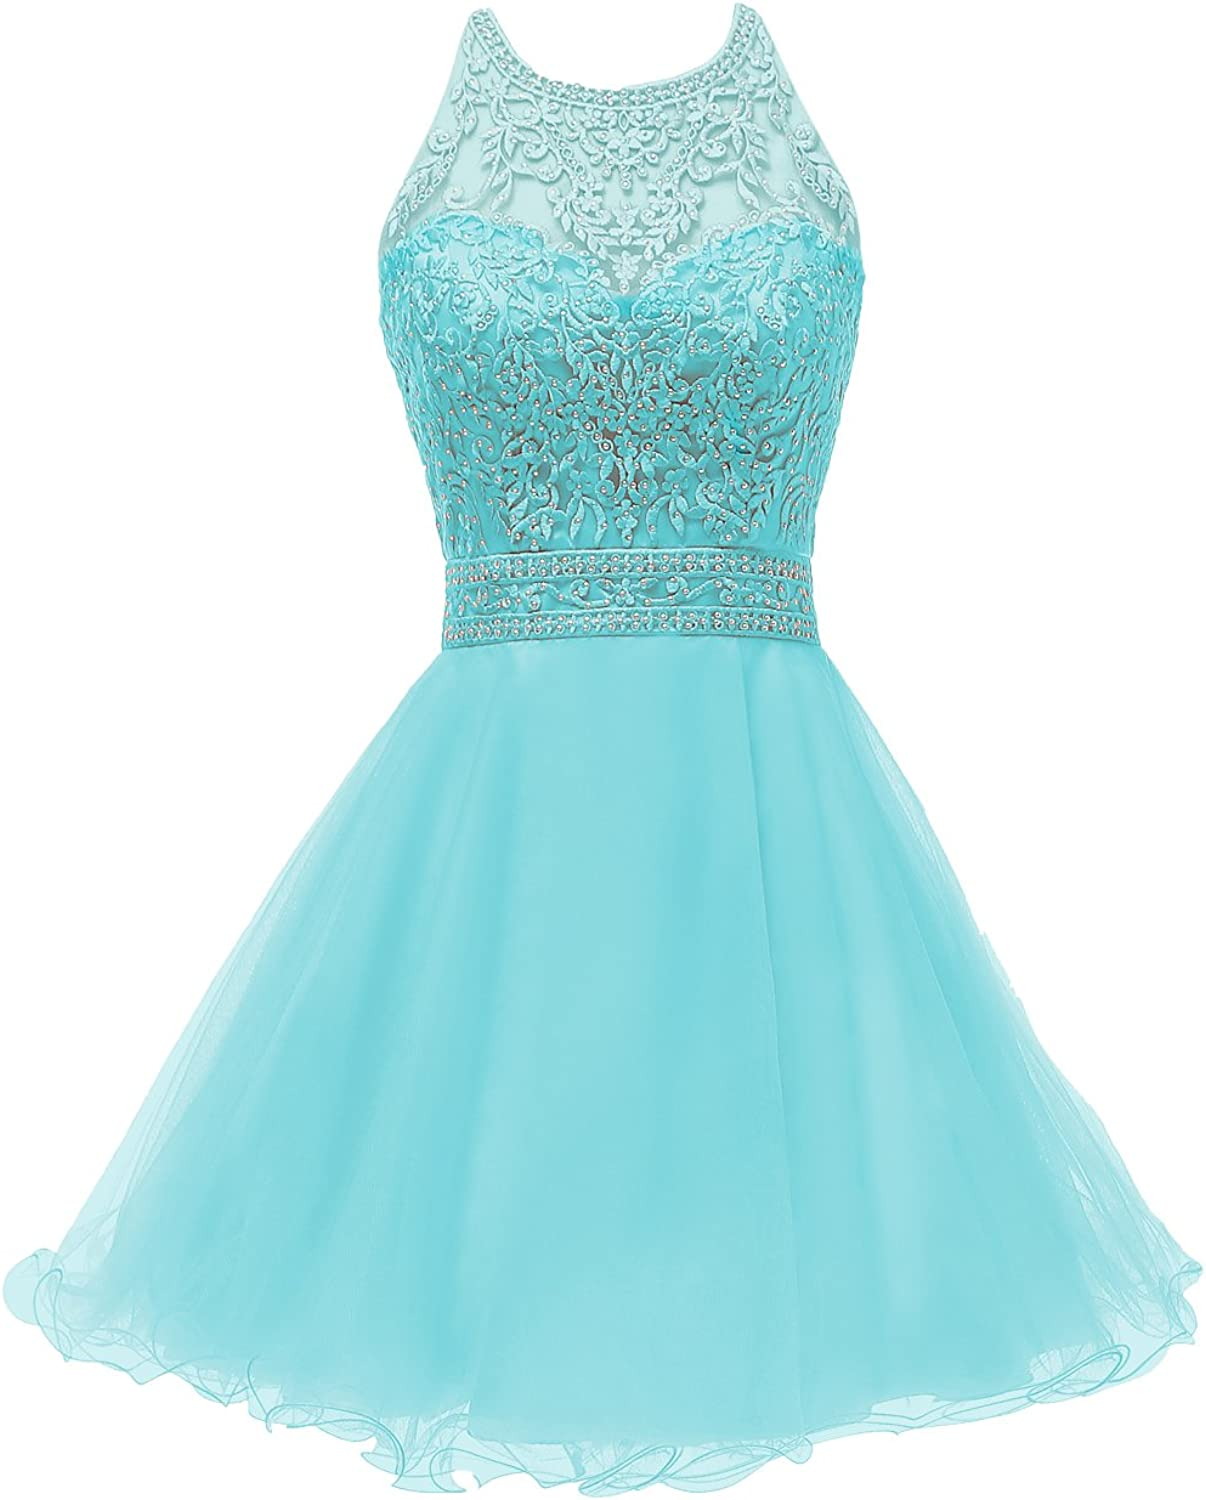 Huifany Women's Short Beaded Homecoming Dresses Tulle Applique Prom Cocktail